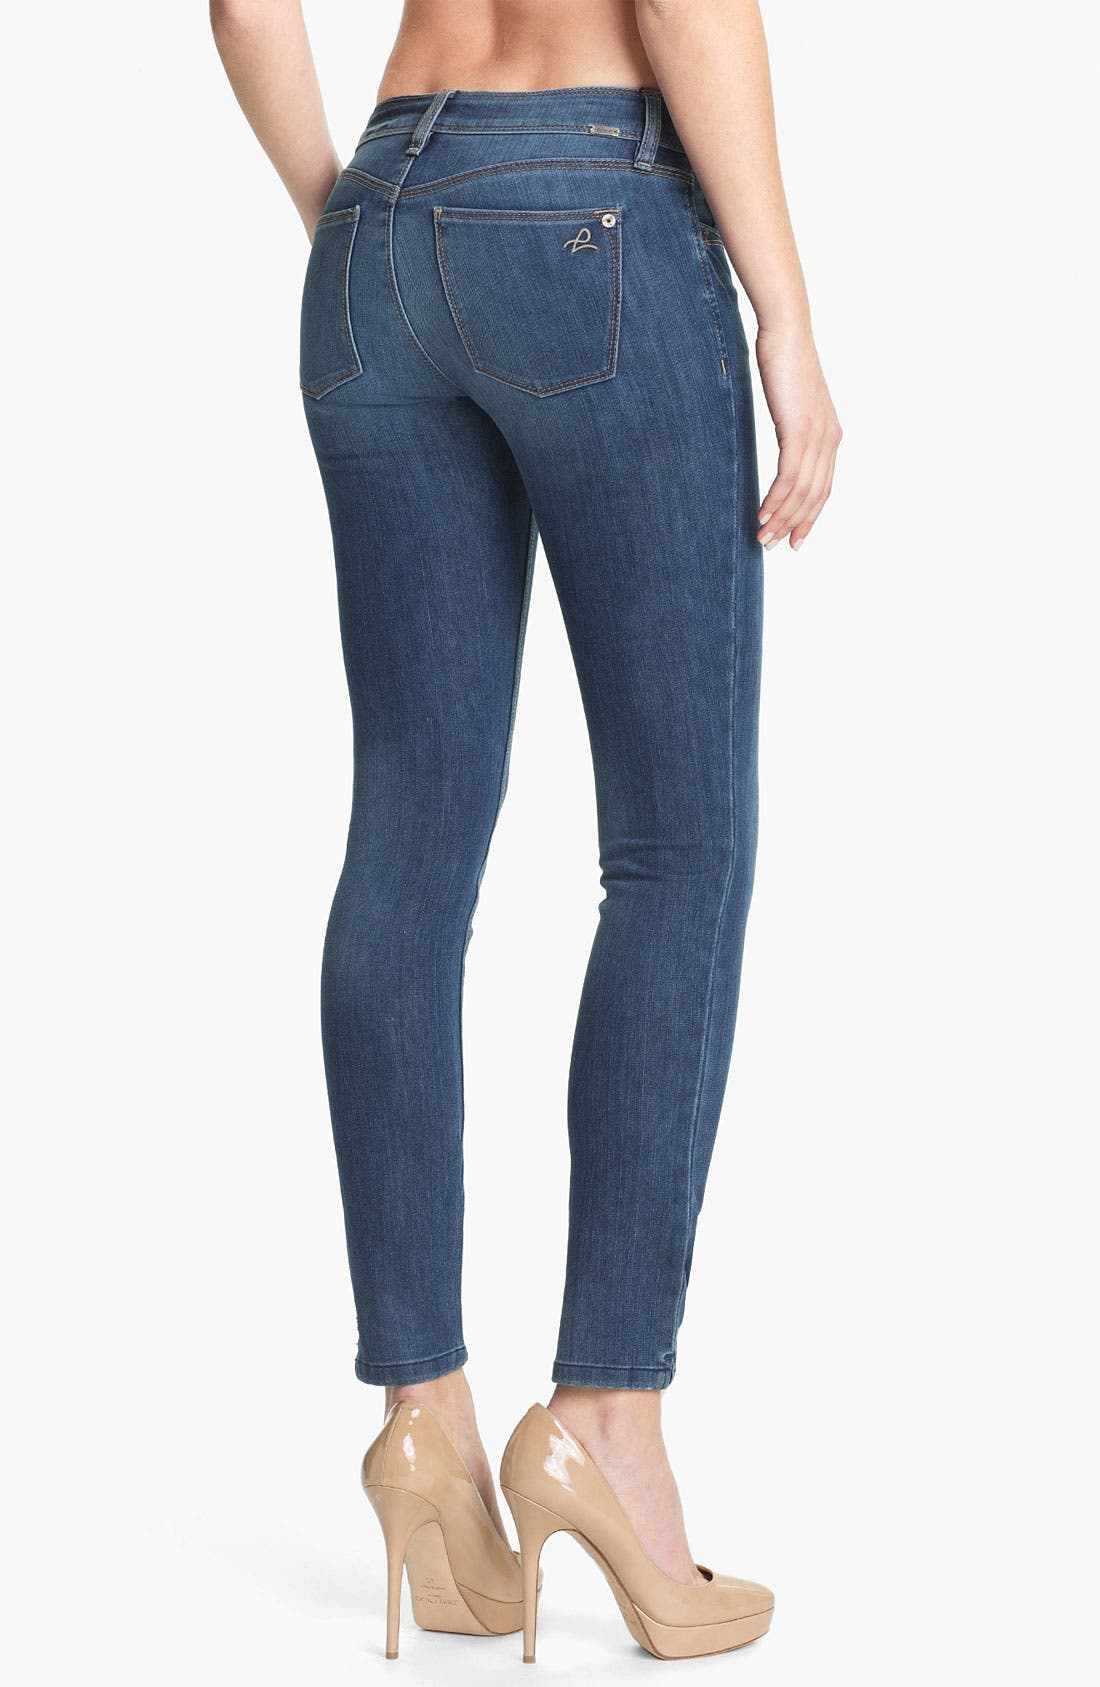 Alternate Image 2  - DL1961 'Angel' X-Fit Stretch Denim Skinny Ankle Jeans (Zeppelin)